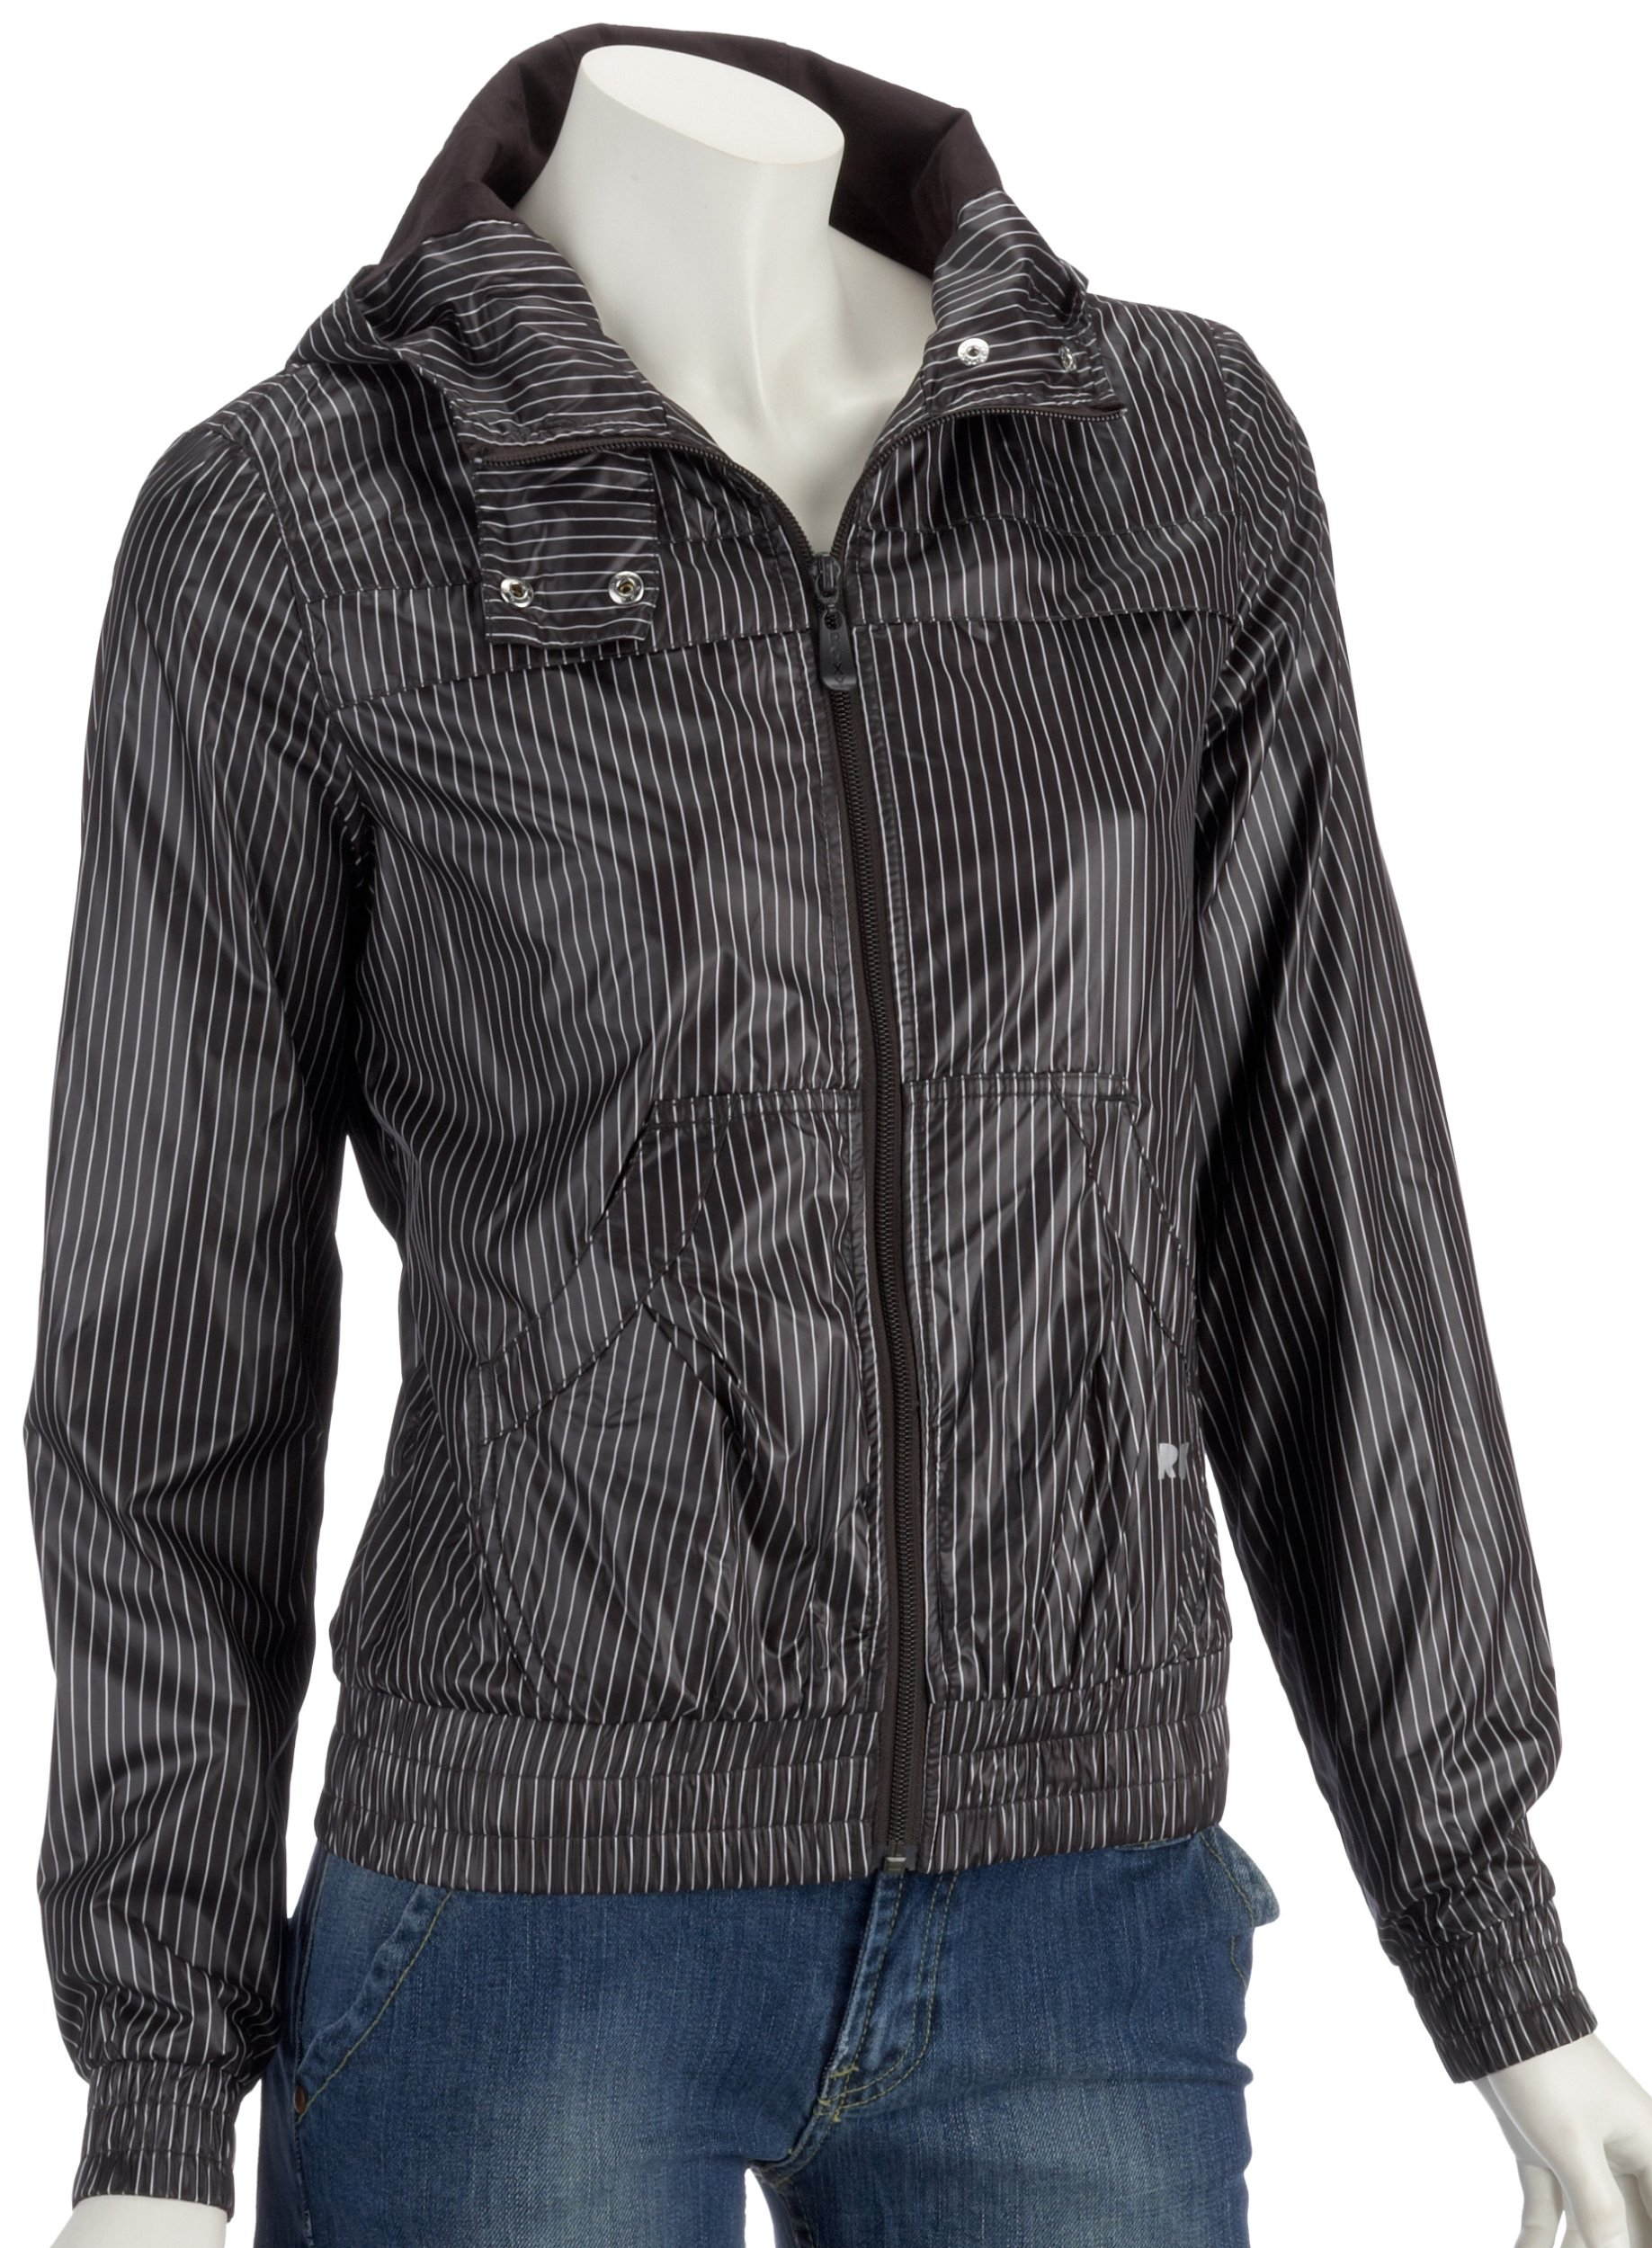 Roxy chaqueta Zoe Jacket, CK Chocolate